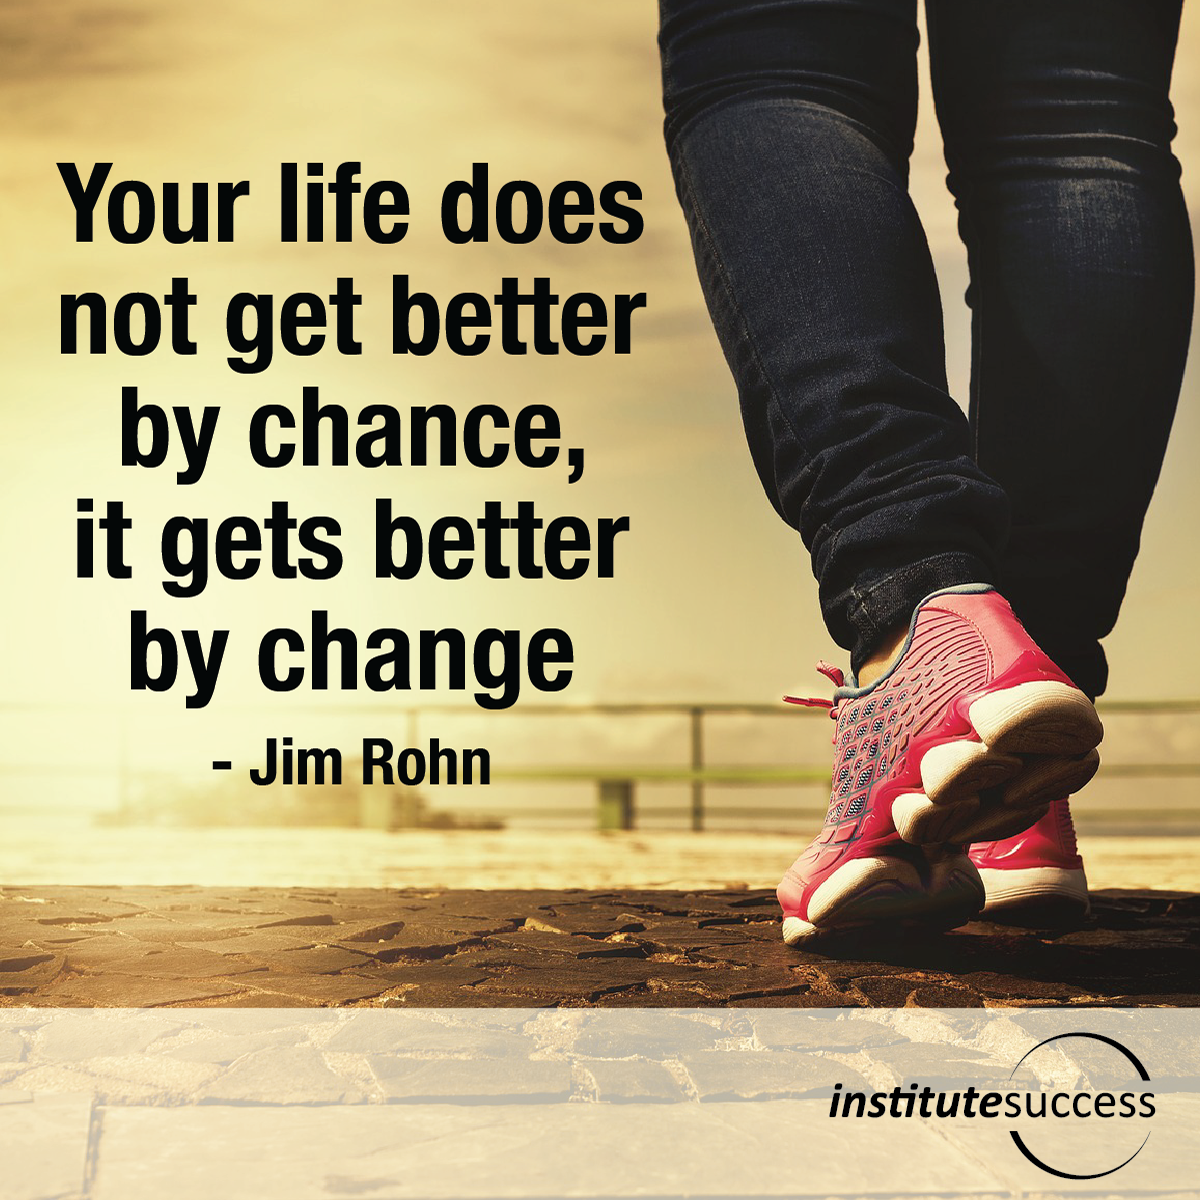 Your life does not get better by chance, it gets better by change – Jim Rohn